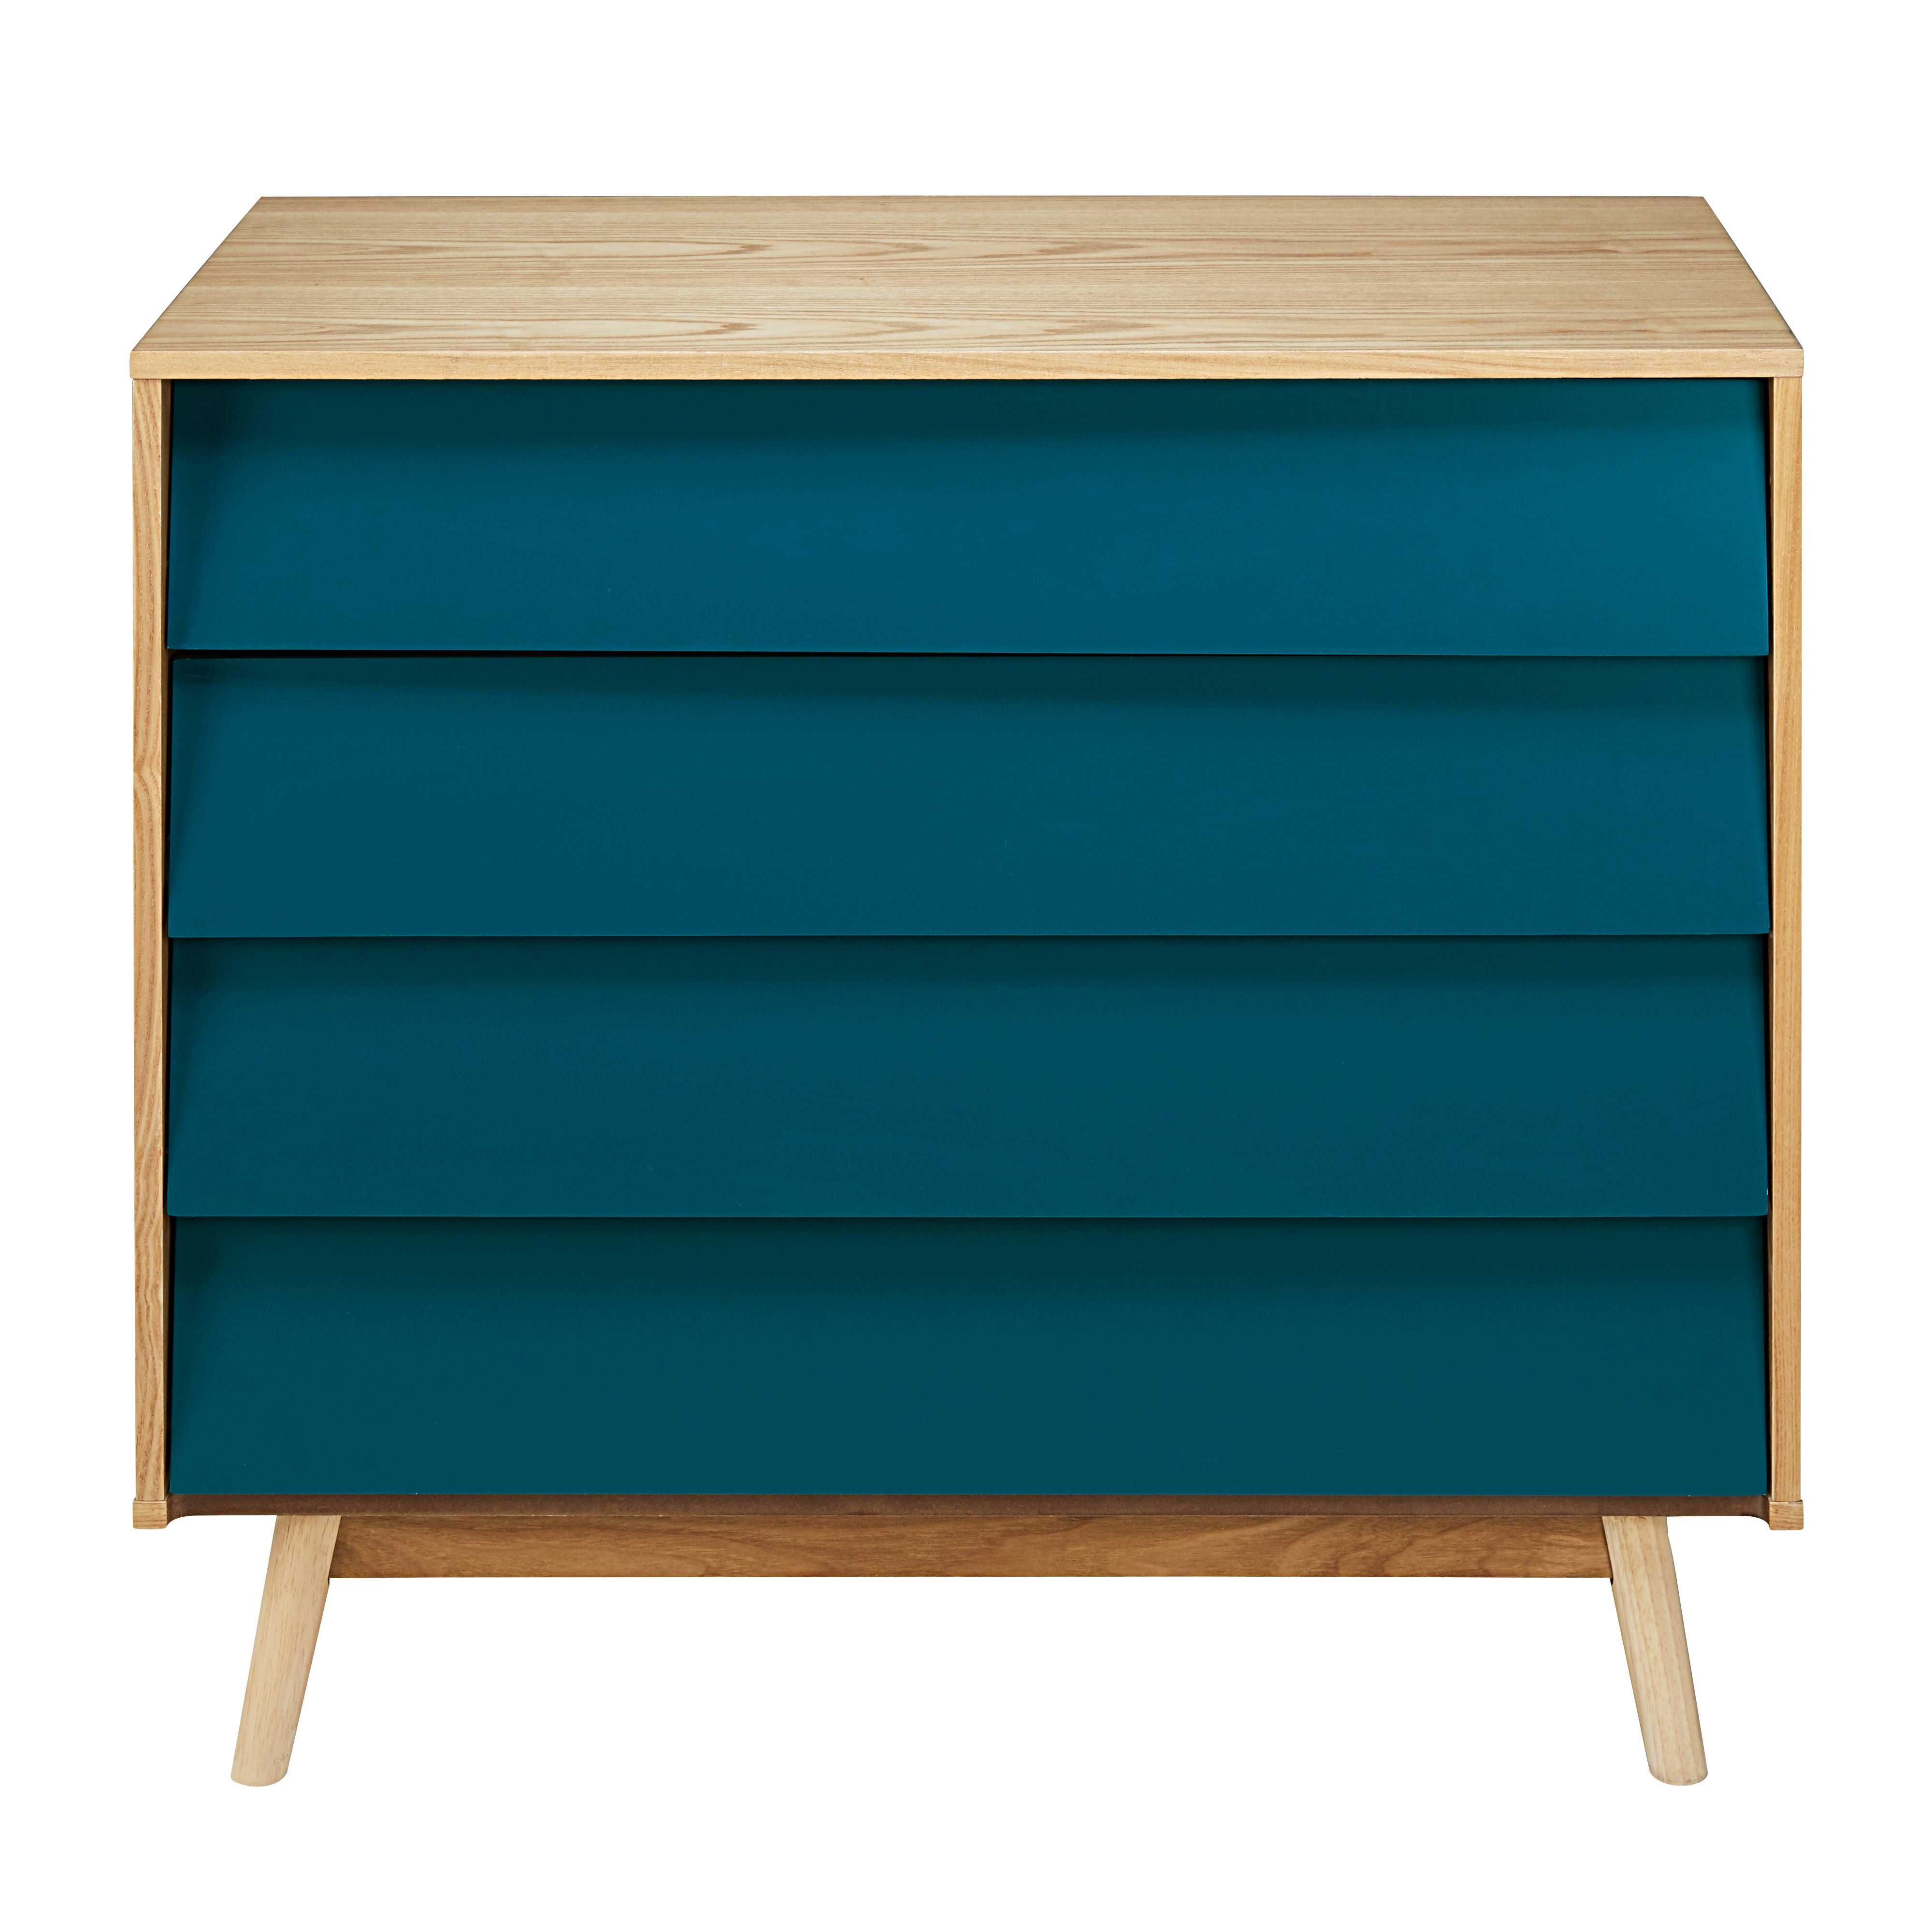 Commode Bleue Maison Du Monde Commode Vintage 4 Tiroirs Bleu Pétrole In 2019 Wanted Blue